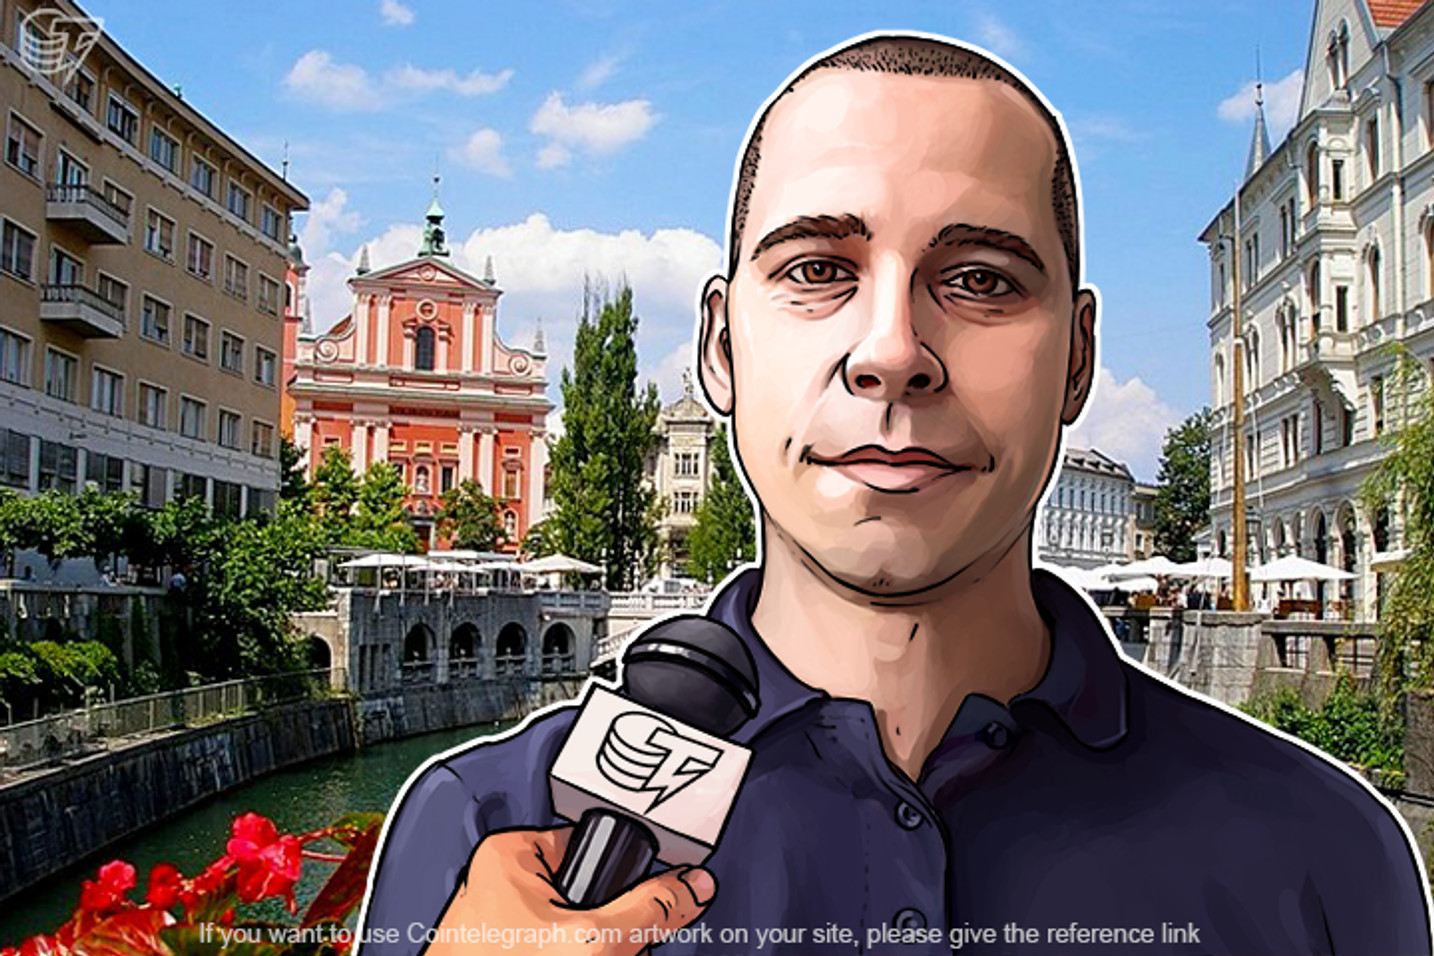 Jure Pirc: We Promote Bitcoin And Blockchain For Common Users In Slovenia To Make Government Adopt It